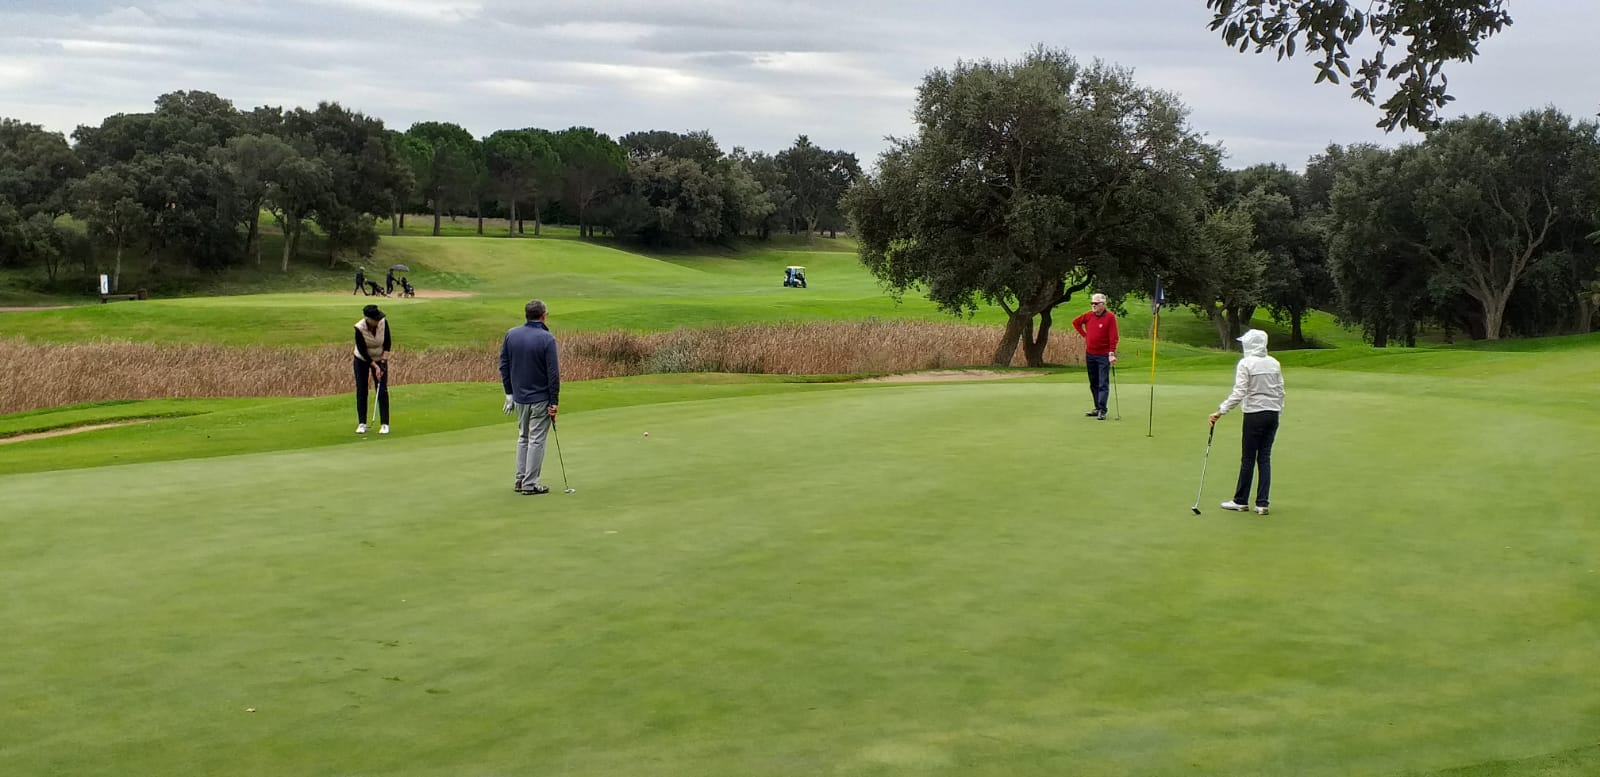 WhatsApp-Image-2019-11-07-at-16.46.23 Golfy Cup Catalogne 2019